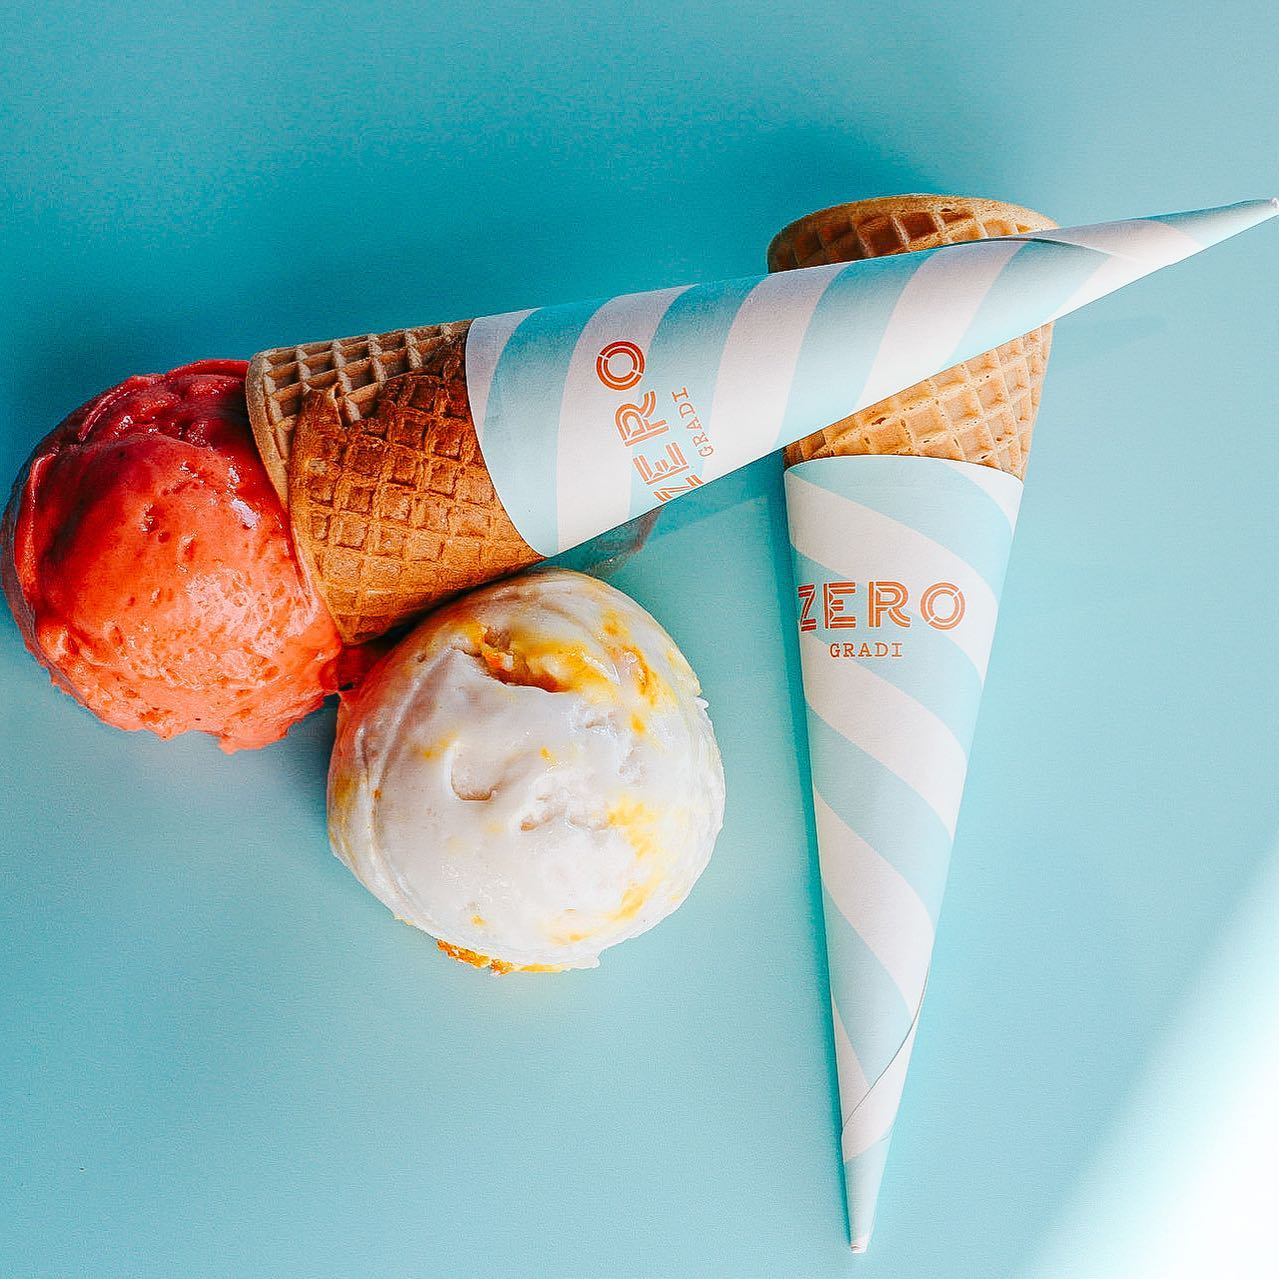 two scoops of gelato with two waffle cones on a blue background